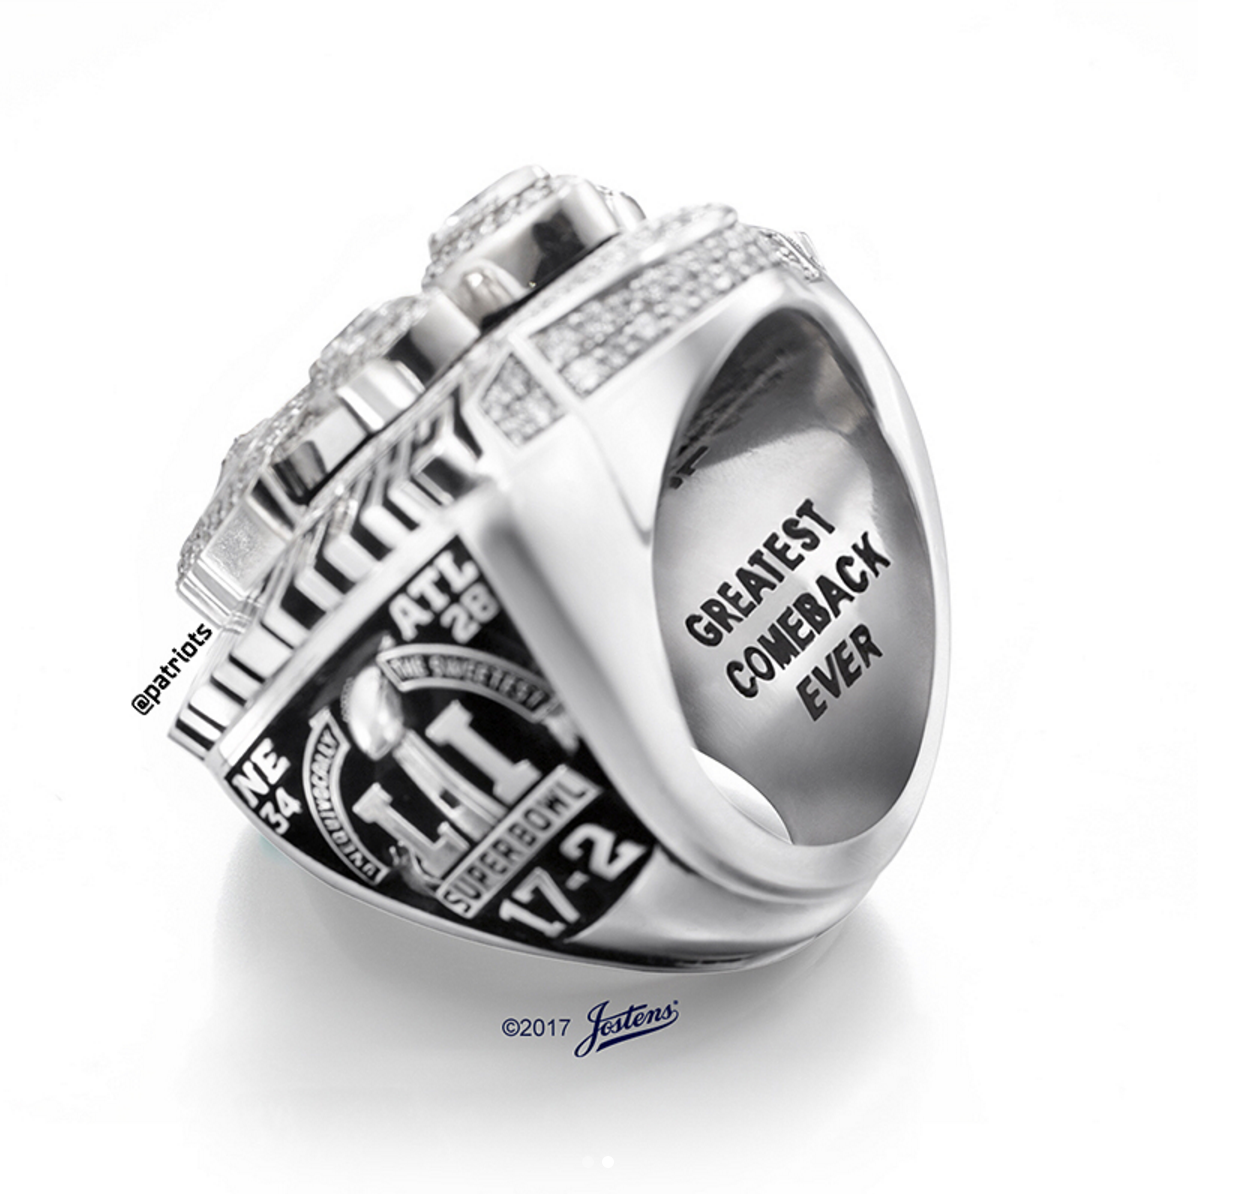 patriots diamond new sky super england rings news nfl ring bowl